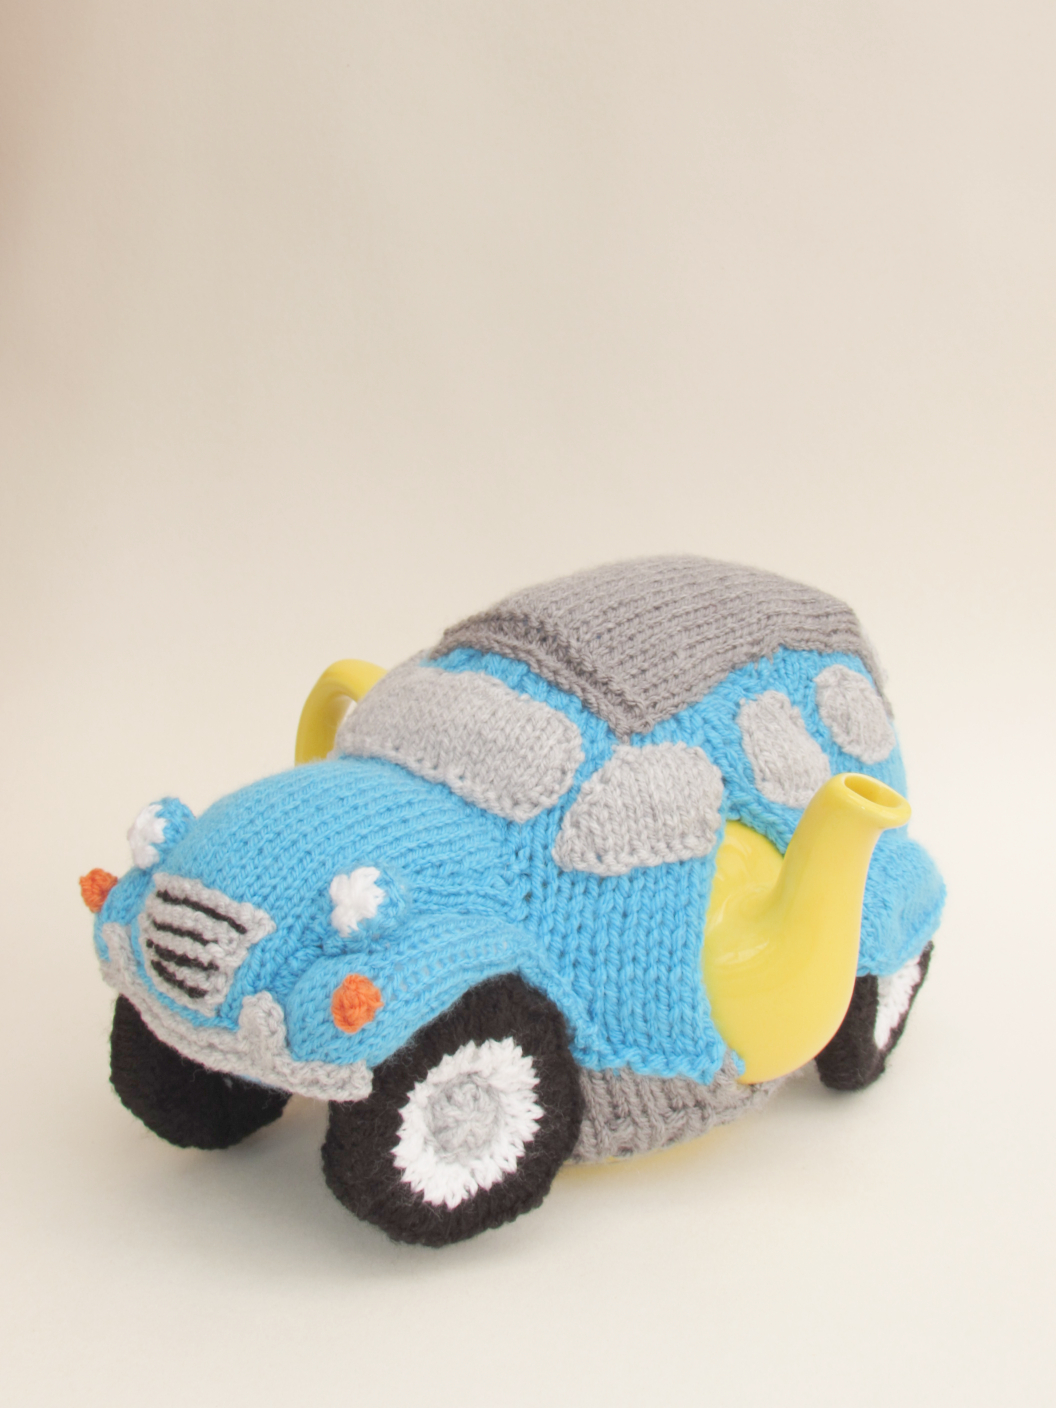 Citroen 2CV  knitting pattern